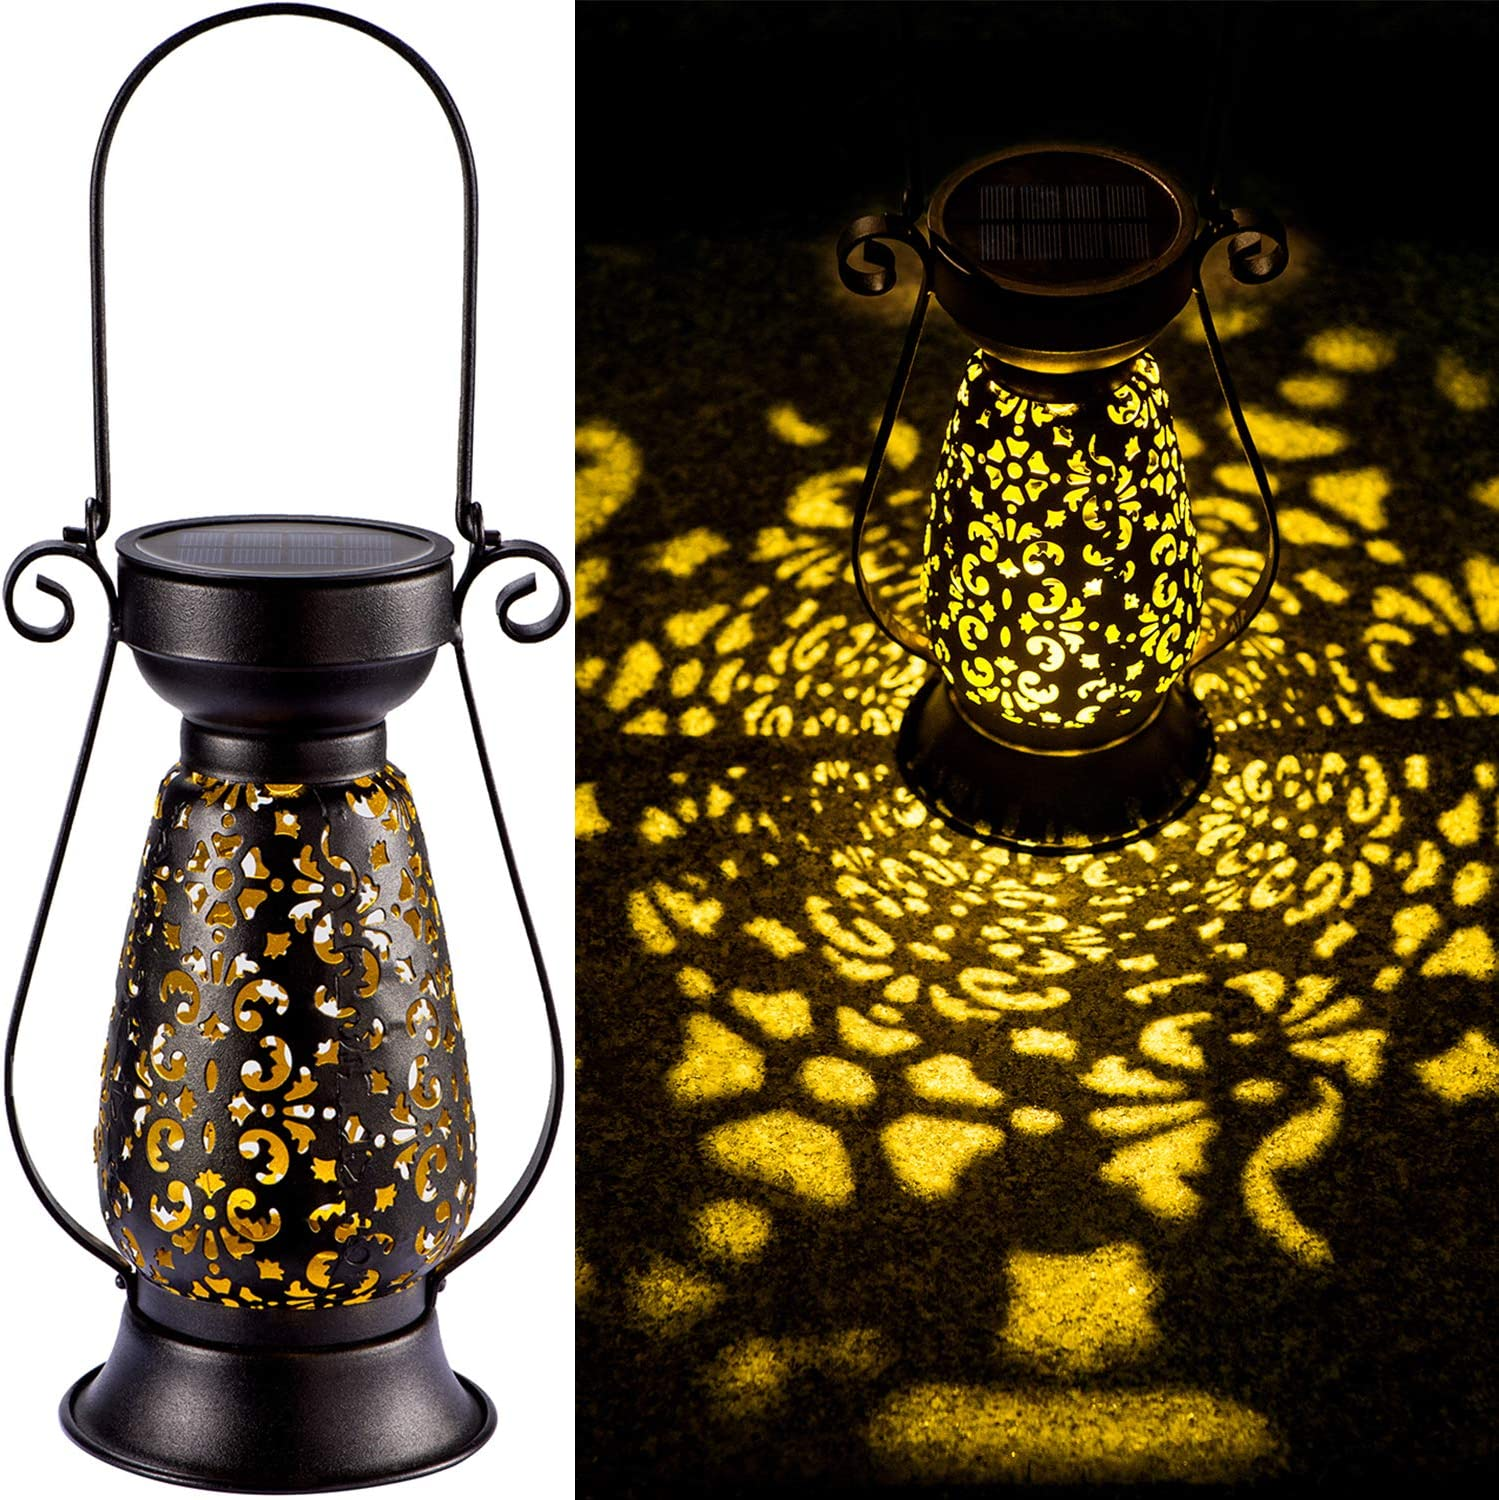 LeiDrail Solar Lantern Outdoor Garden Hanging Lanterns Retro Black Metal Decorative Light Warm White LED Waterproof Landscape Lighting for Yard Table Pathway Porch - 1 Pack